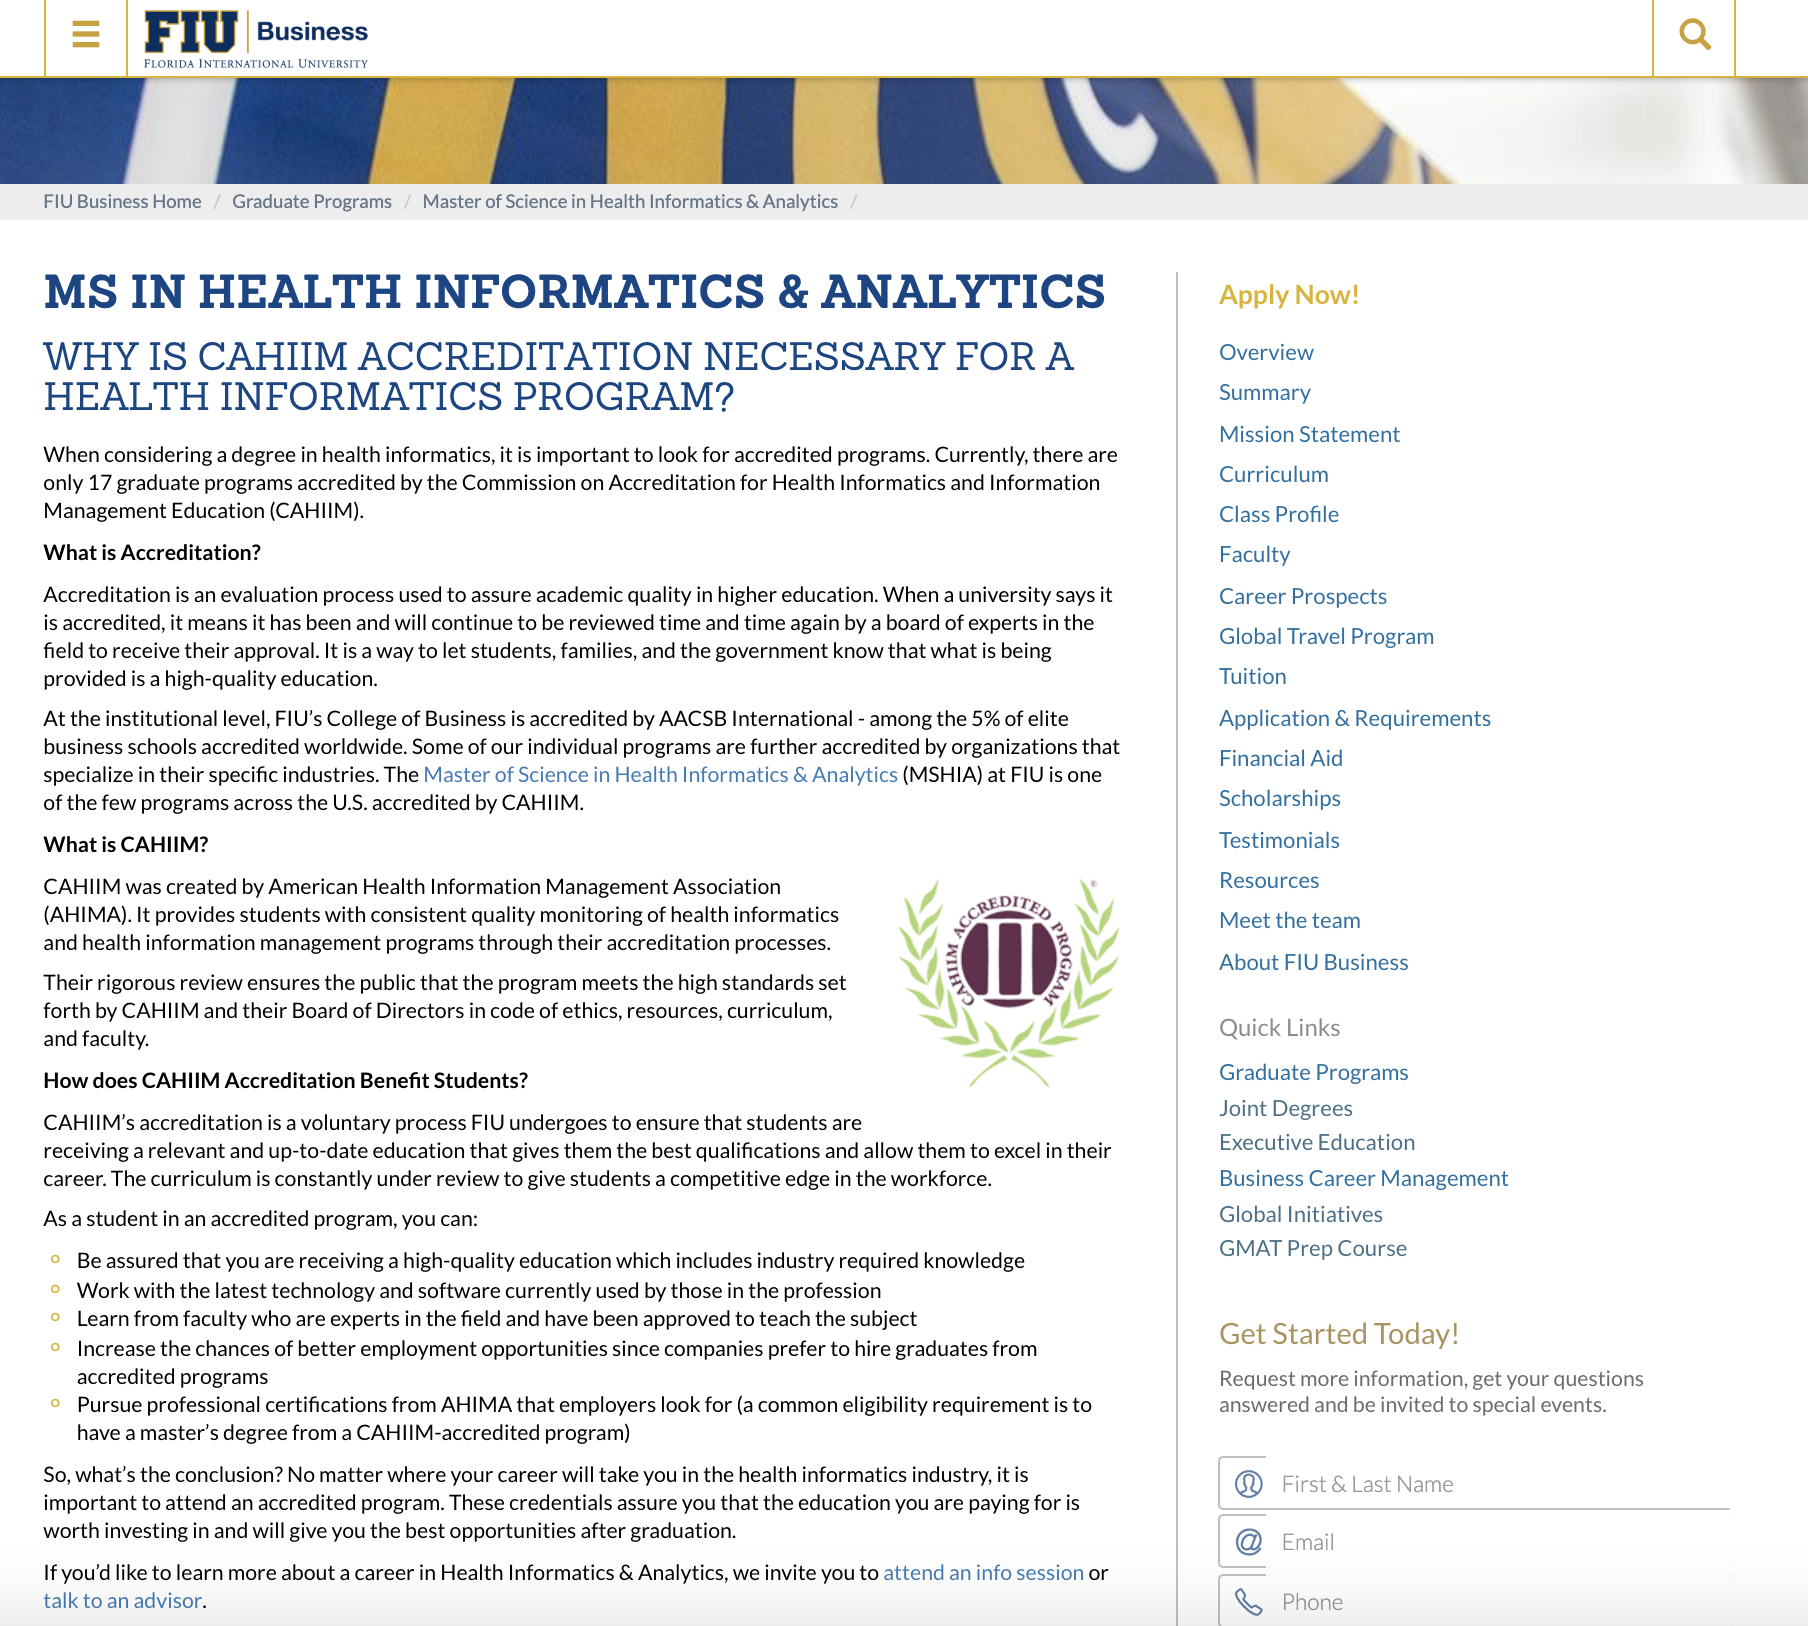 FIU MS in Health Informatics & Analytics SEO Content